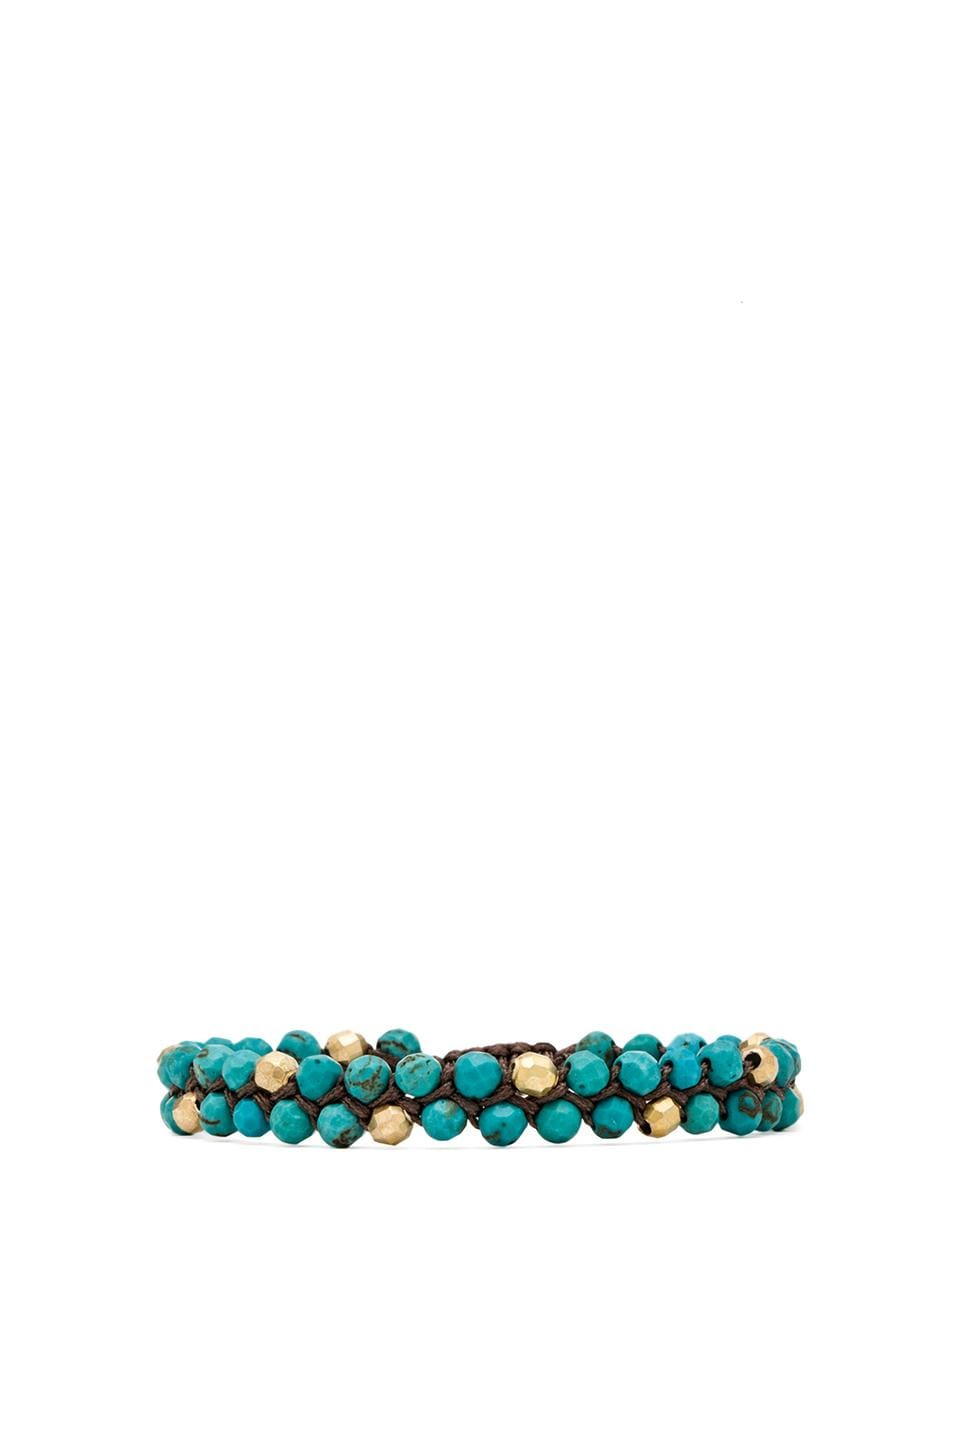 CHAN LUU Beaded Bracelet in Turquoise & Taupe